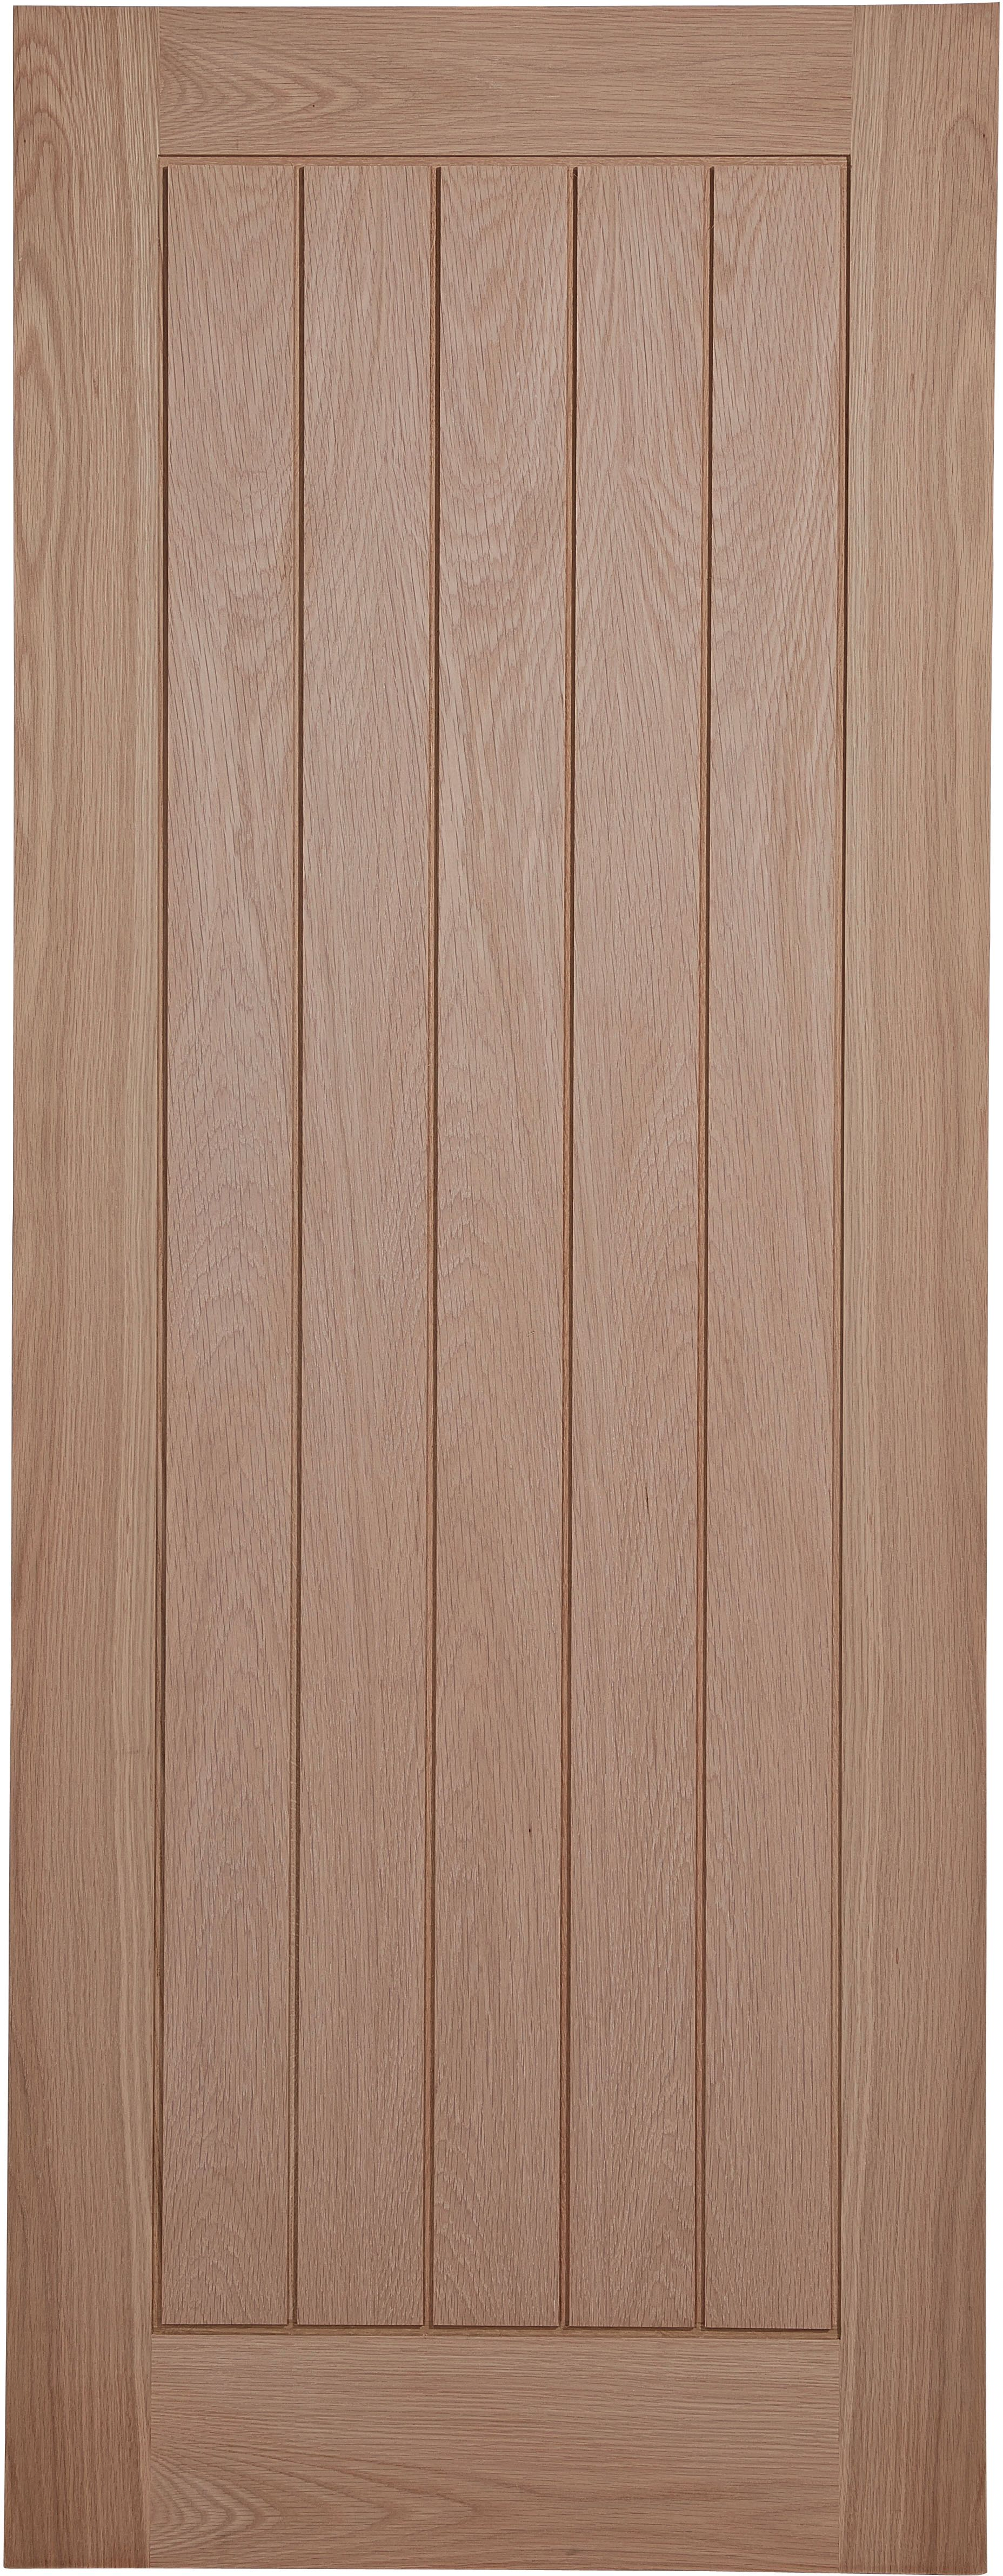 Cottage Panel Prefinished Oak Unglazed Internal Standard Door, (h)1981mm (w)686mm